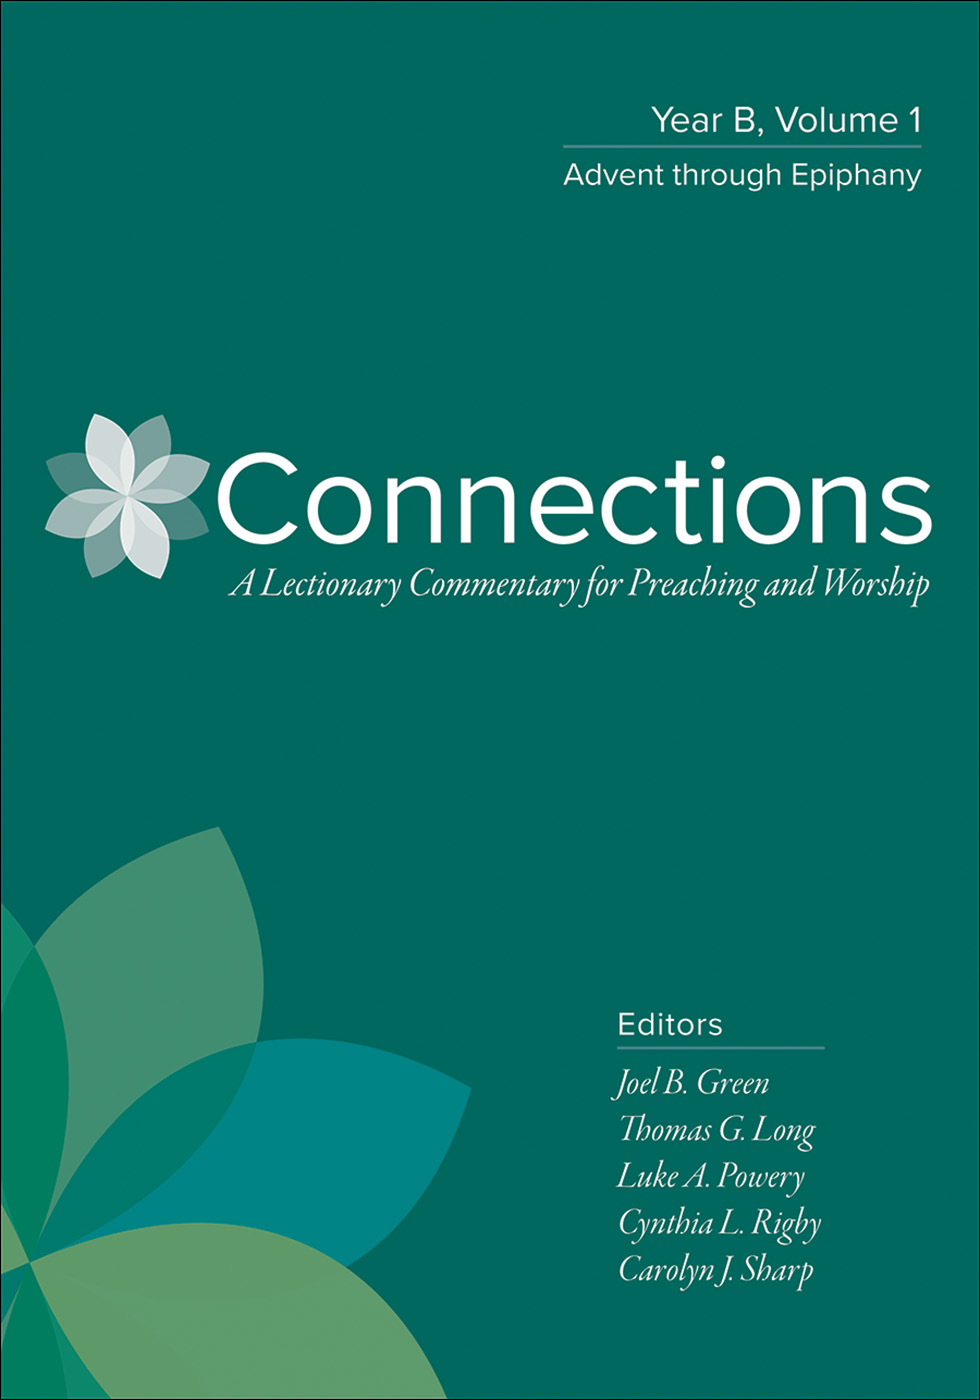 Connections: Year B, Volume 1